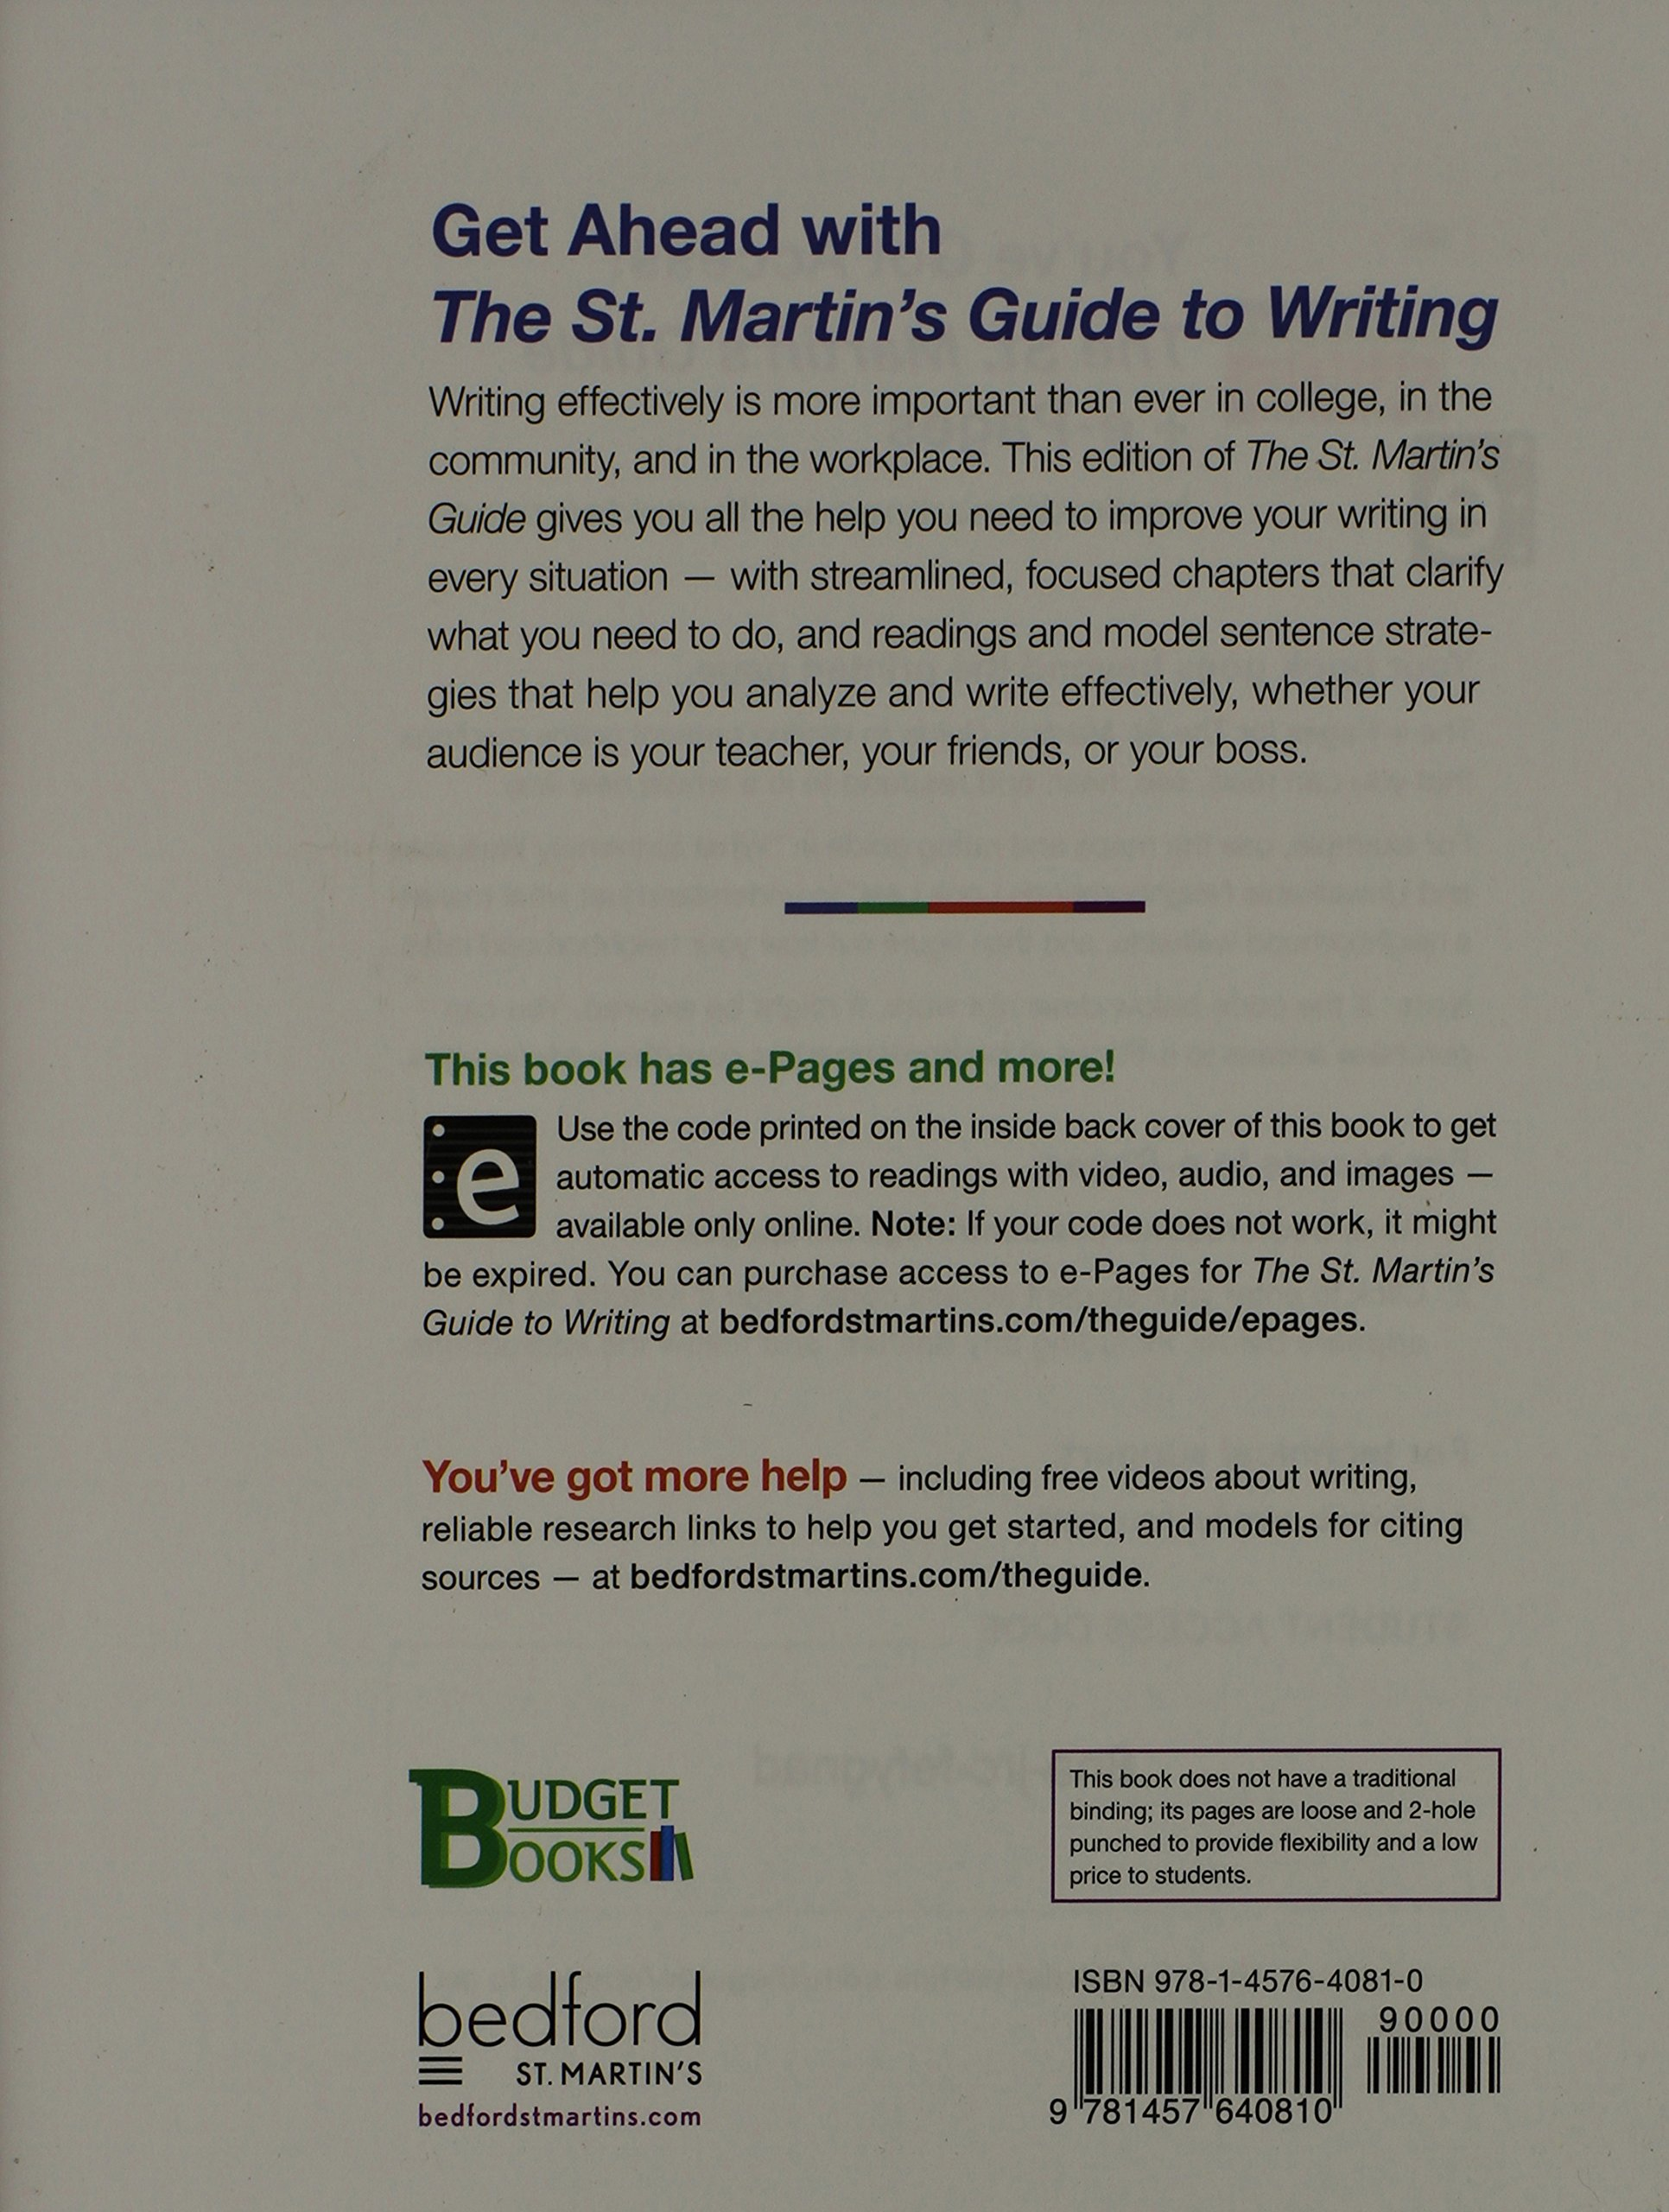 Buy the st martins guide to writing budget books book online buy the st martins guide to writing budget books book online at low prices in india the st martins guide to writing budget books reviews ratings fandeluxe Gallery